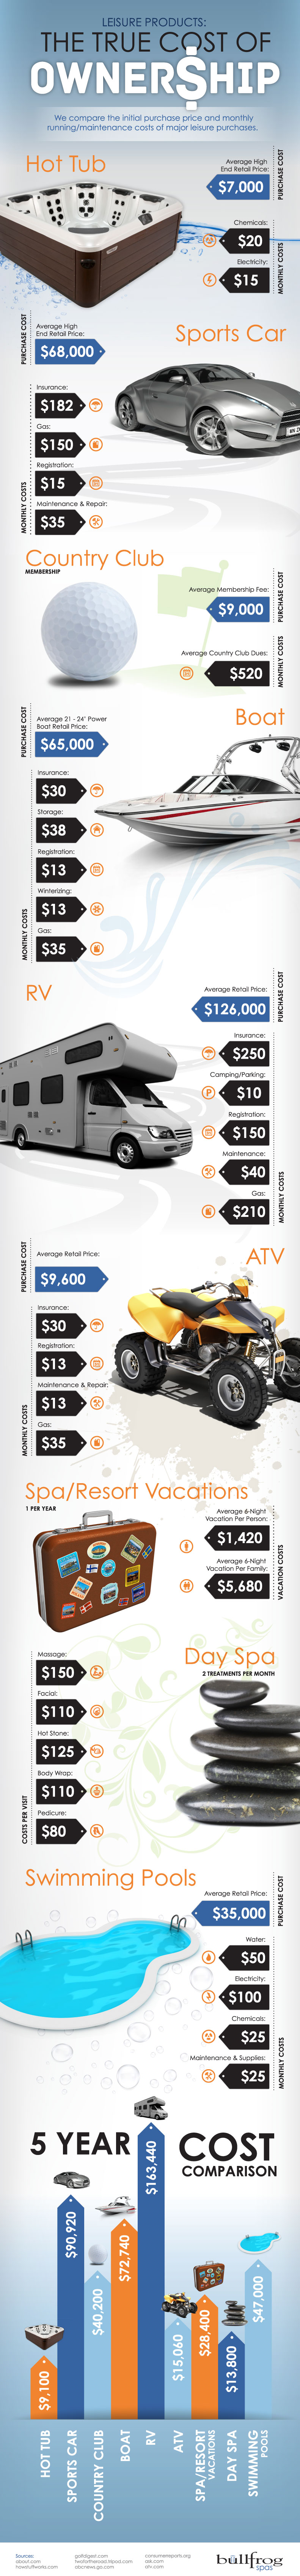 cost-of-ownership-infographic